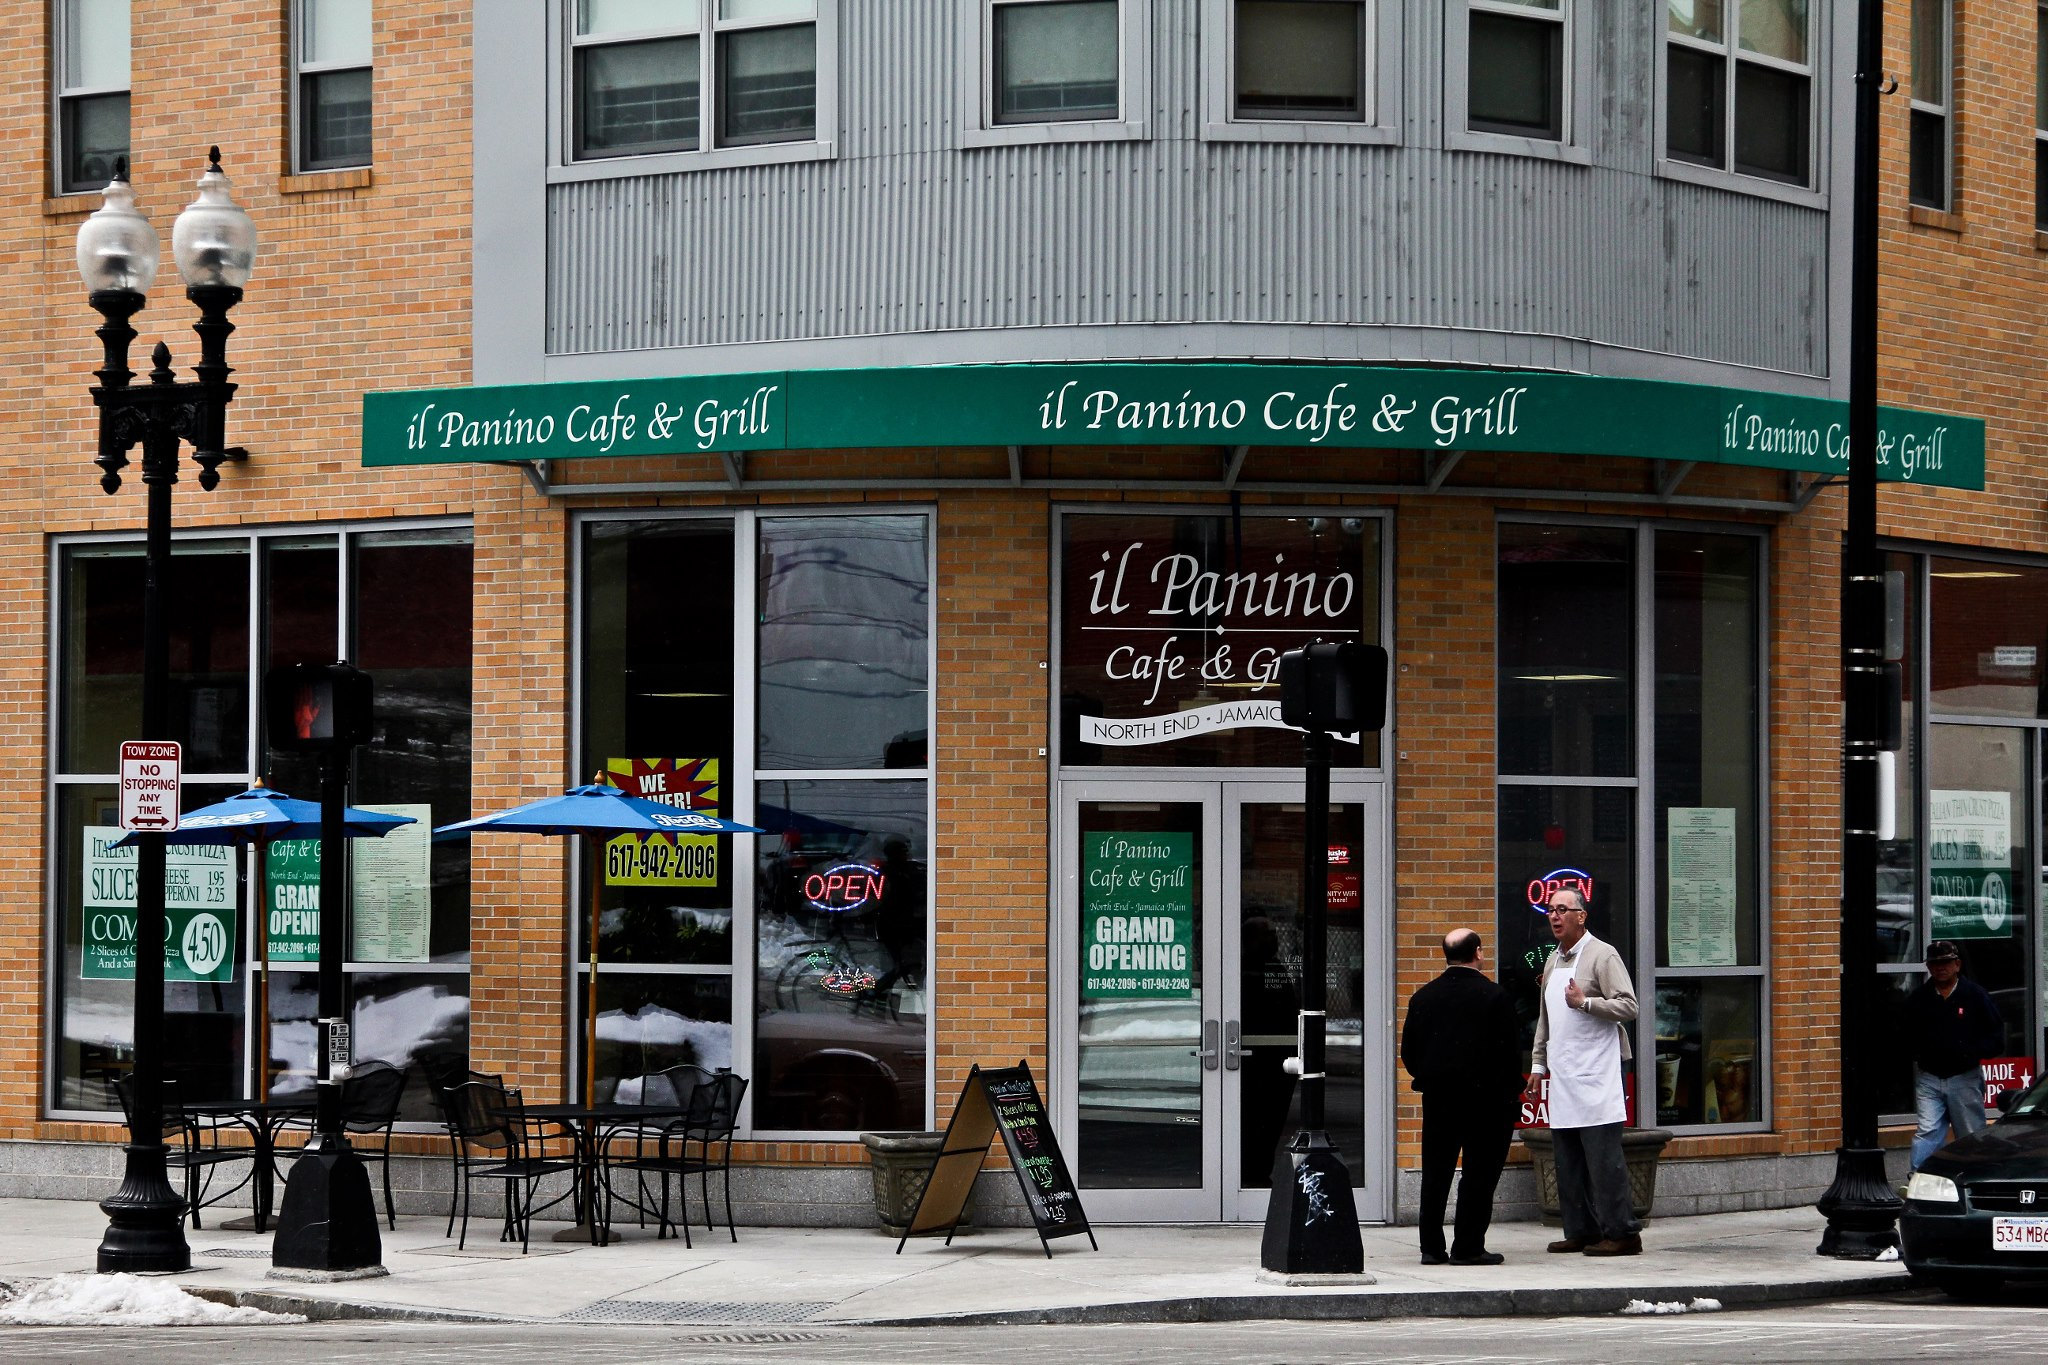 Il Panino Cafe and Grill